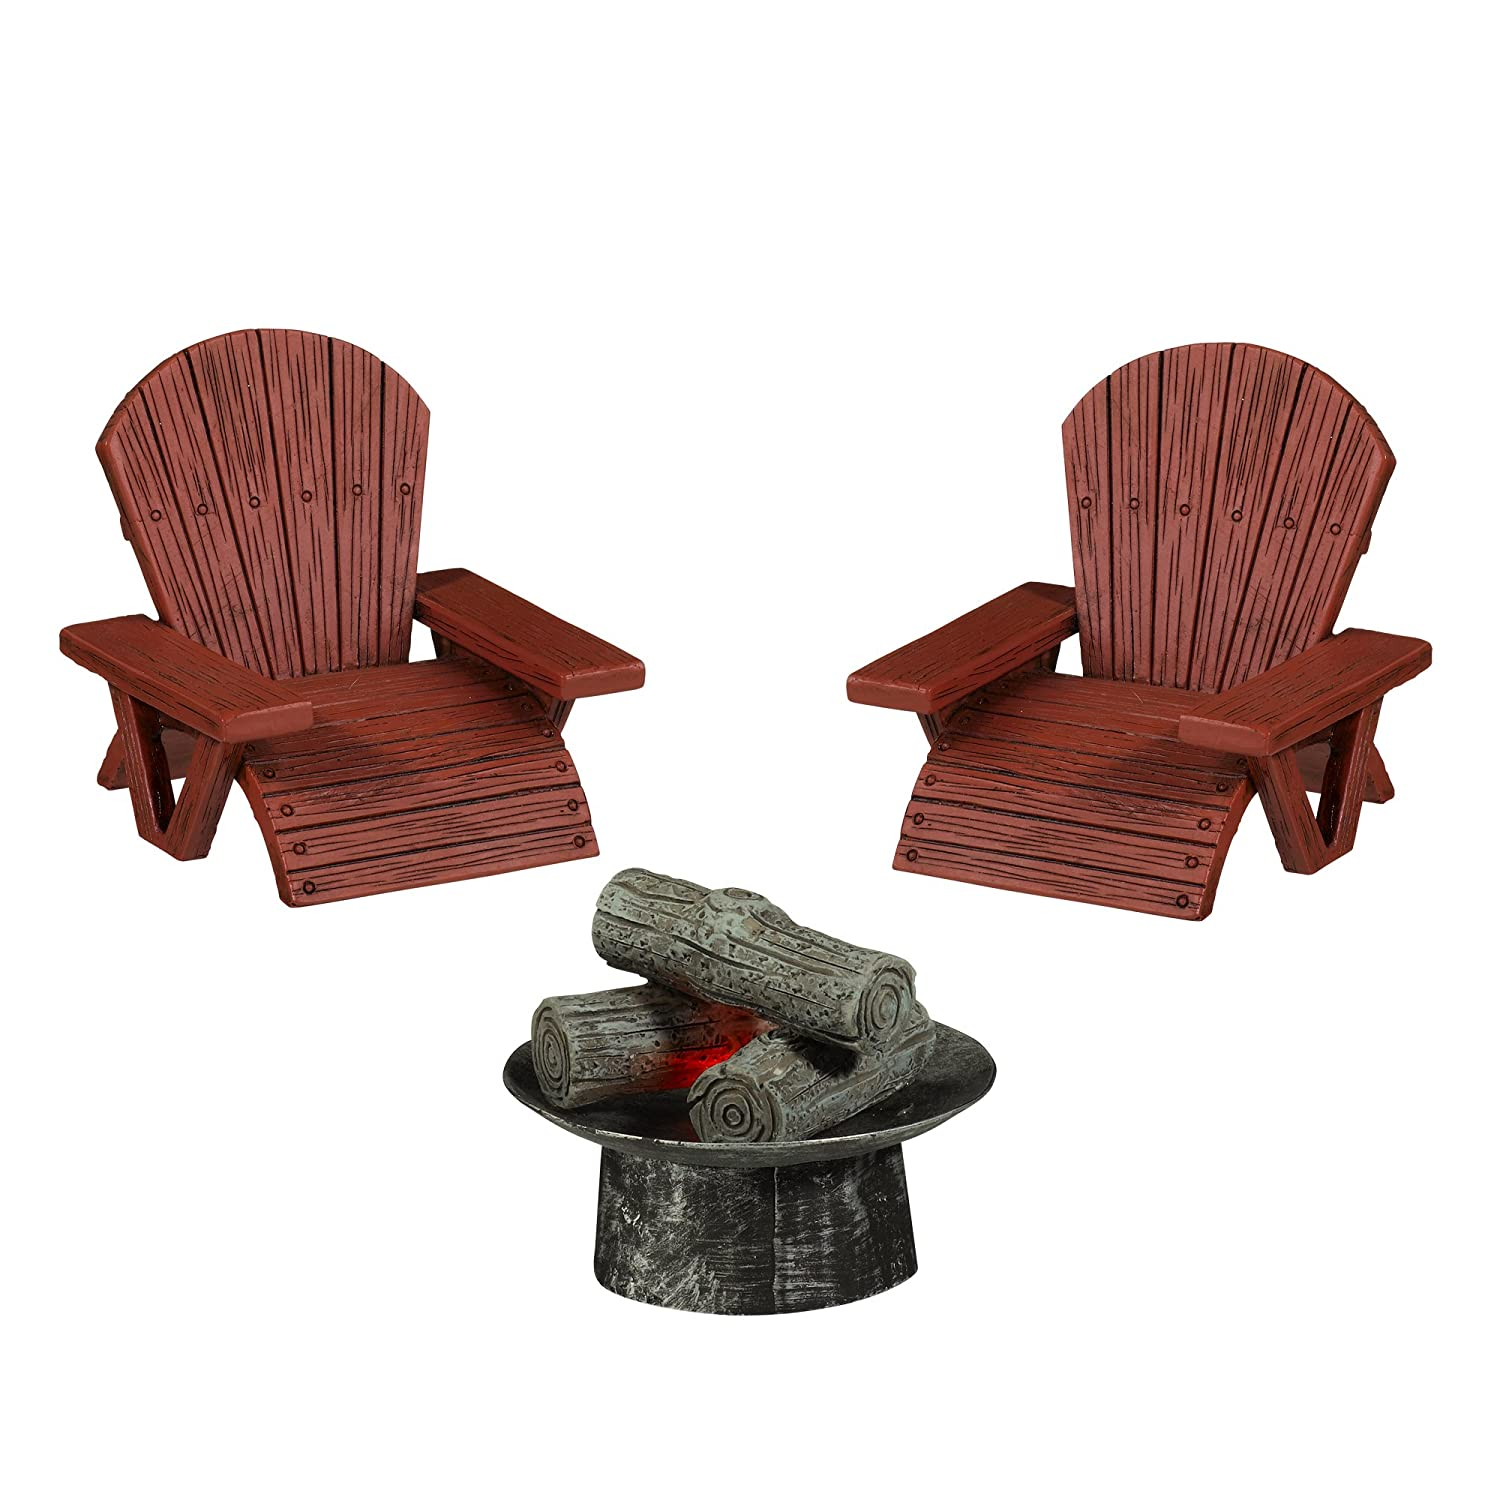 Grasslands Road Miniature Fire Pit and 2 3-Inch Tall Lawn Chairs, 2-Pack кеды road 3 road 3 ro040amajii4 page 9